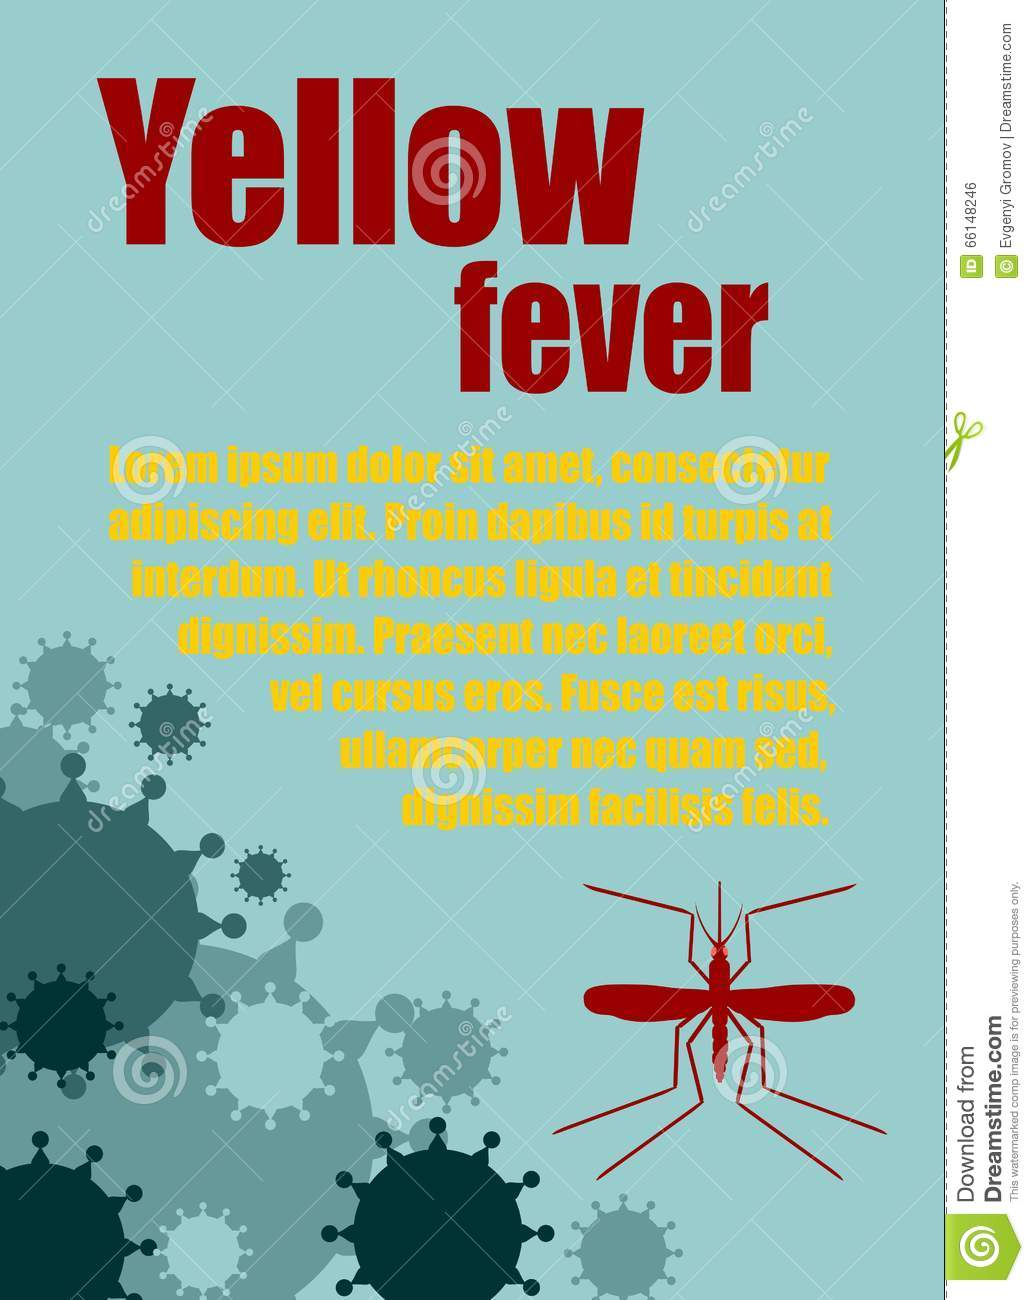 yellow fever research paper Lateral flow test checks for ebola, yellow fever and dengue in one go.